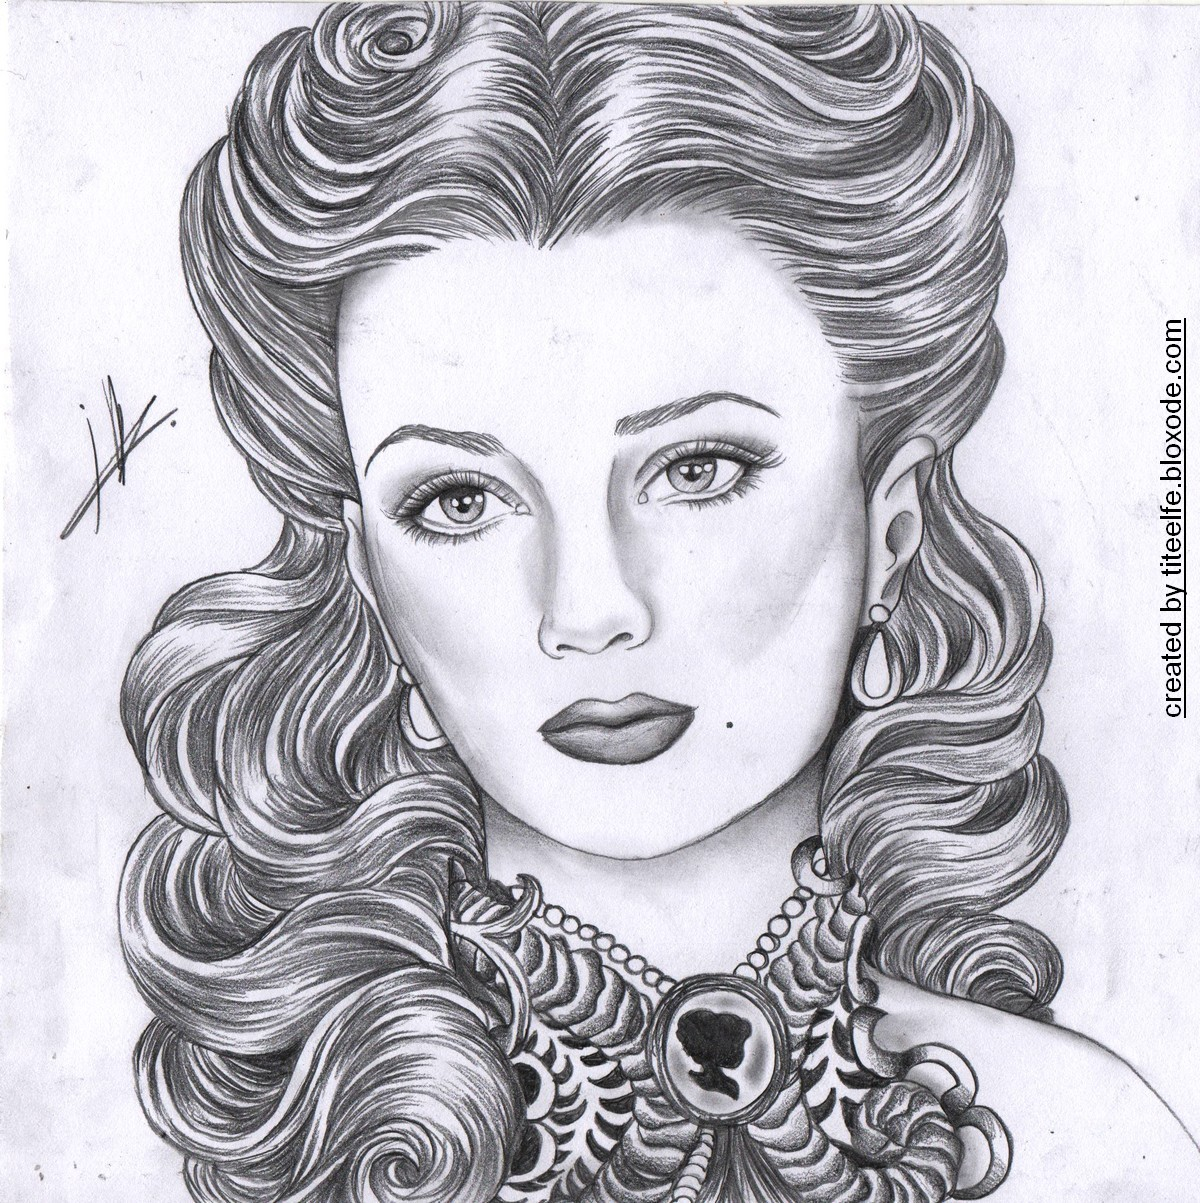 Drawn portrait victorian Bloxode drawings bloxode my All